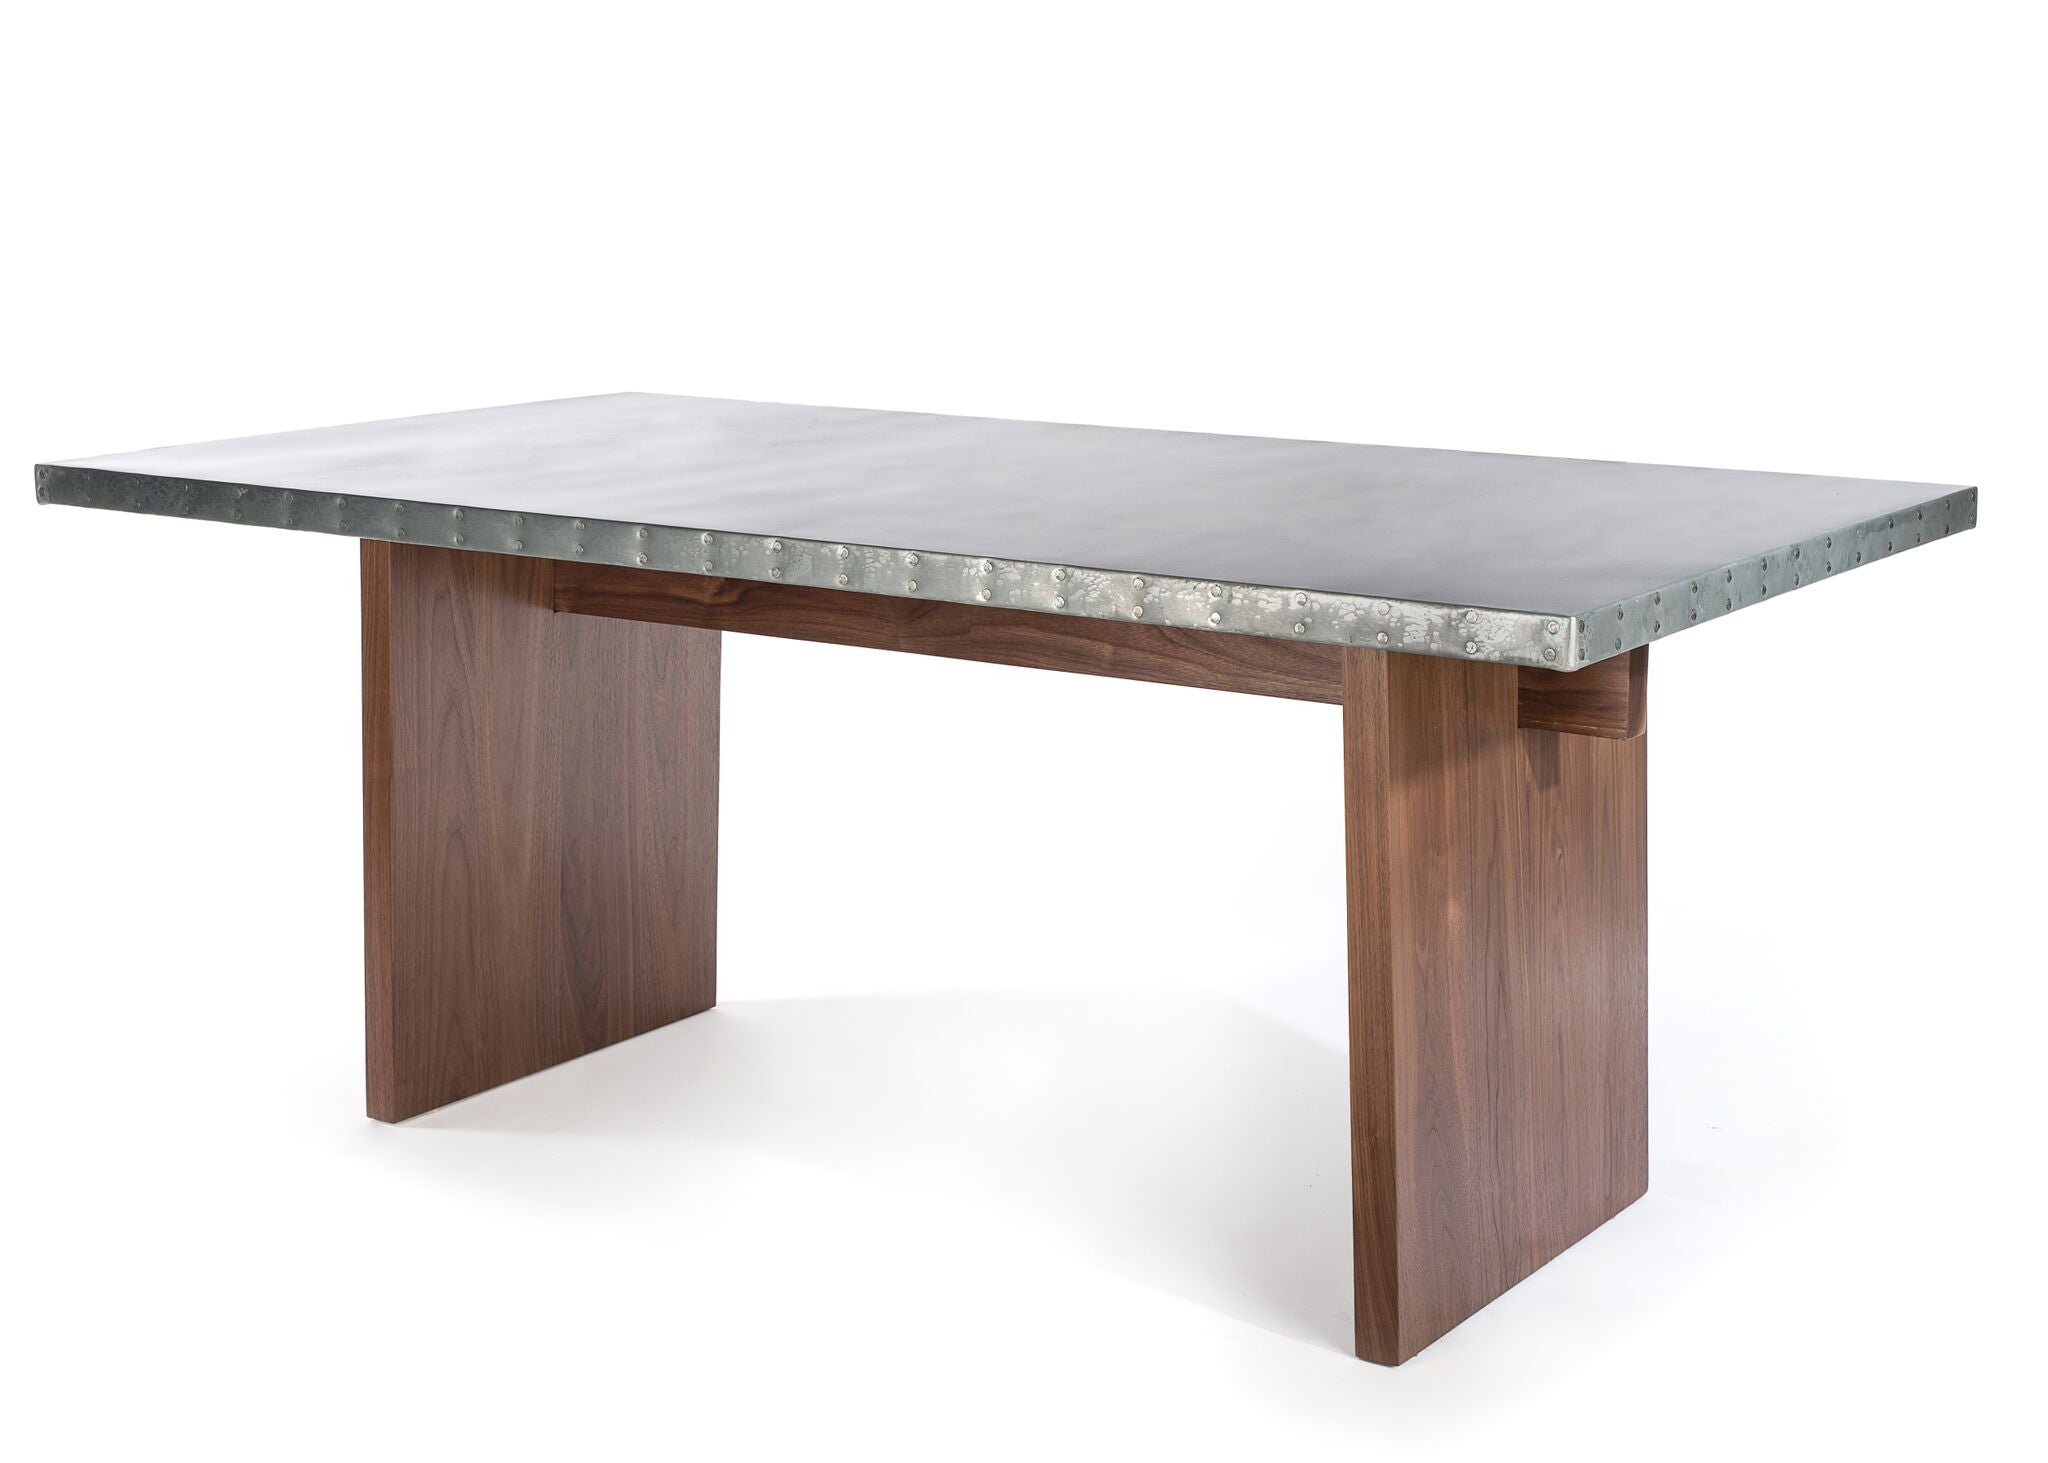 "Zinc Rectangular Table | Sonoma Trestle Table | CLASSIC | Natural Reclaimed Oak | CUSTOM SIZE 60""L 30""W 29""H 